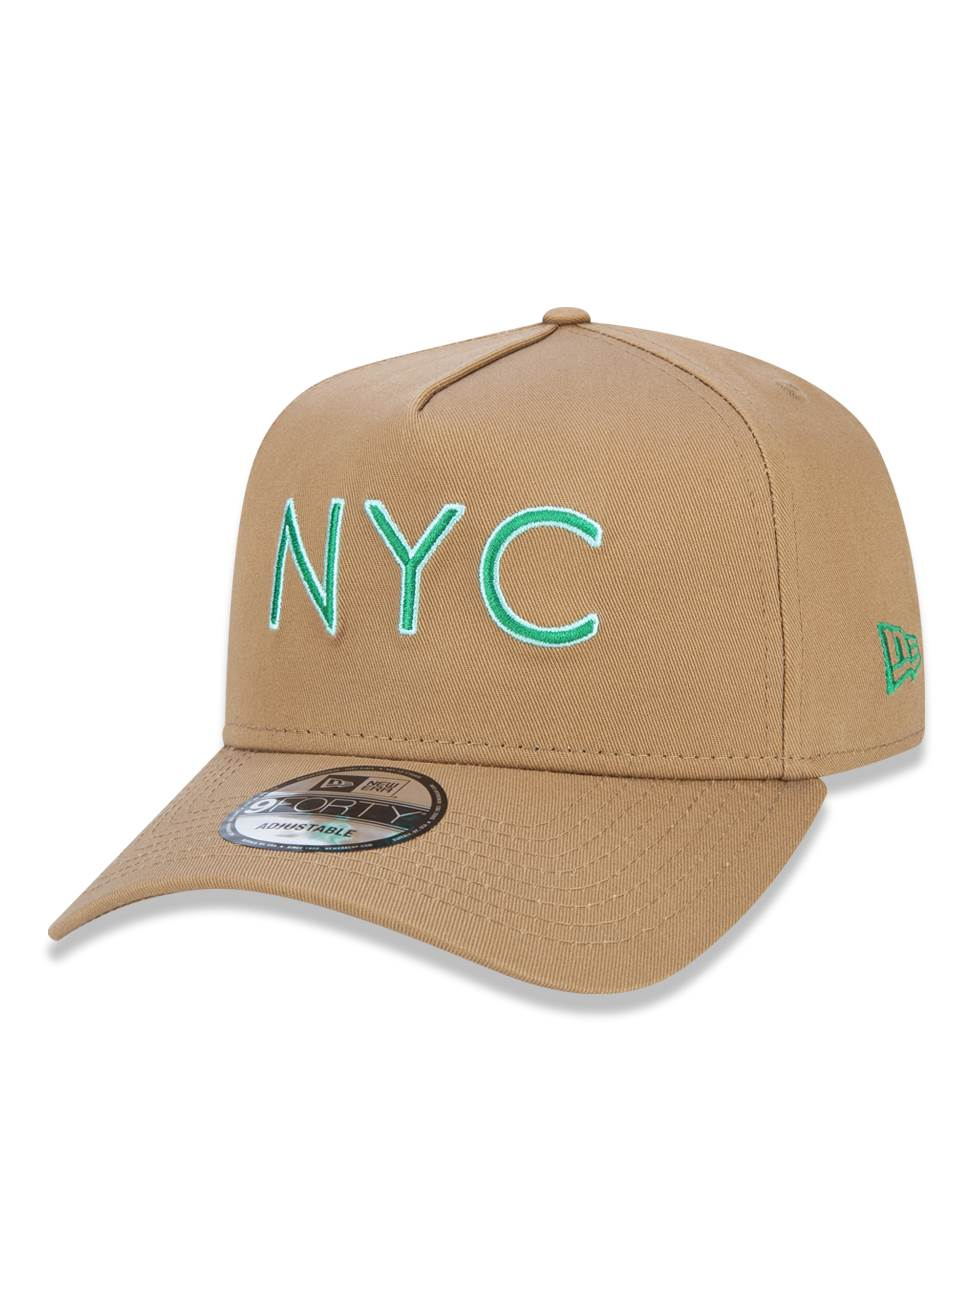 Boné New Era 9forty A-frame NYC Bege